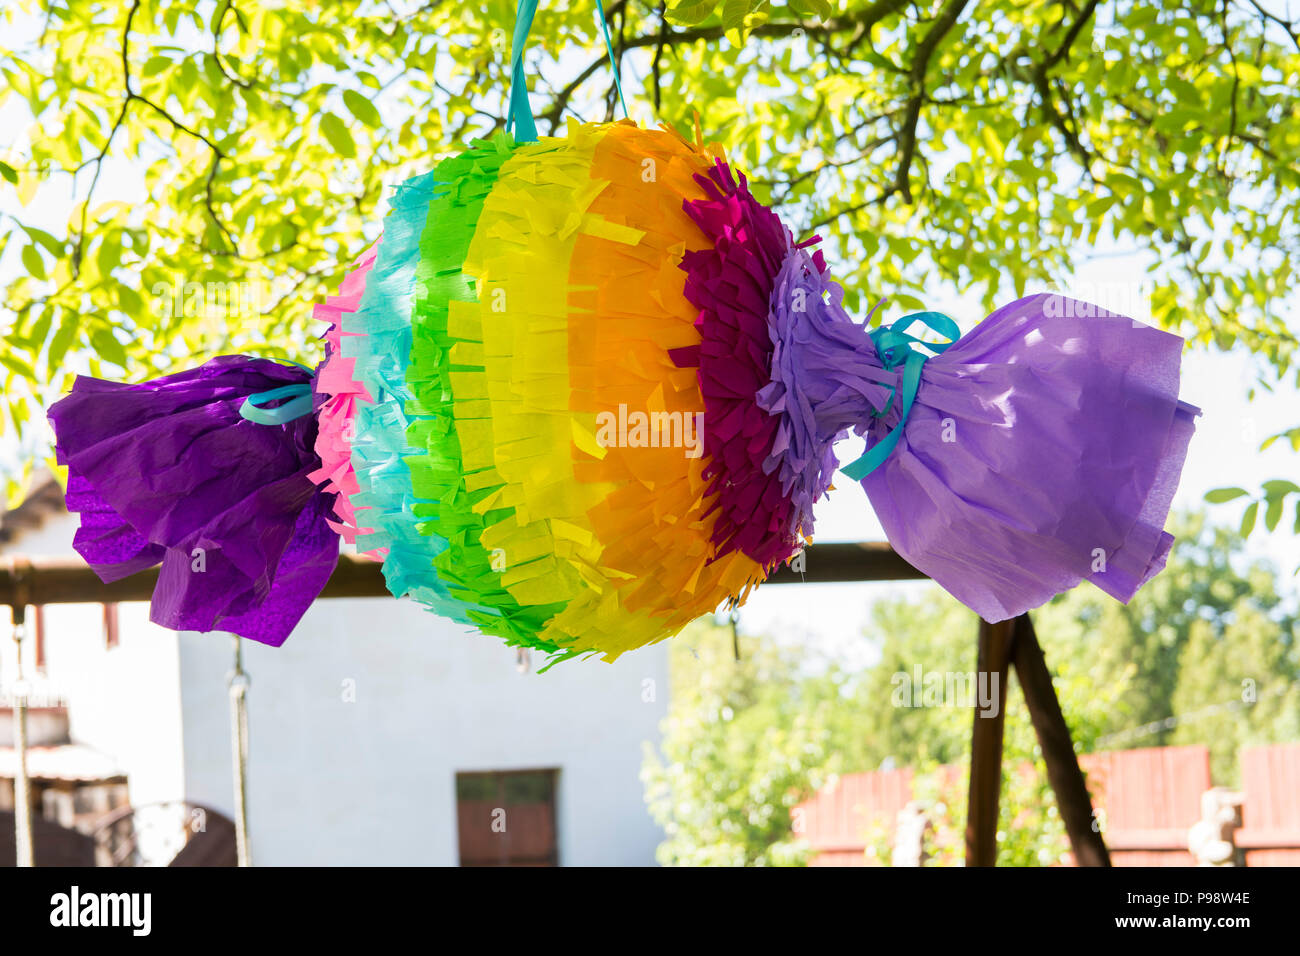 colorfull piniata hanging on the tree - Stock Image